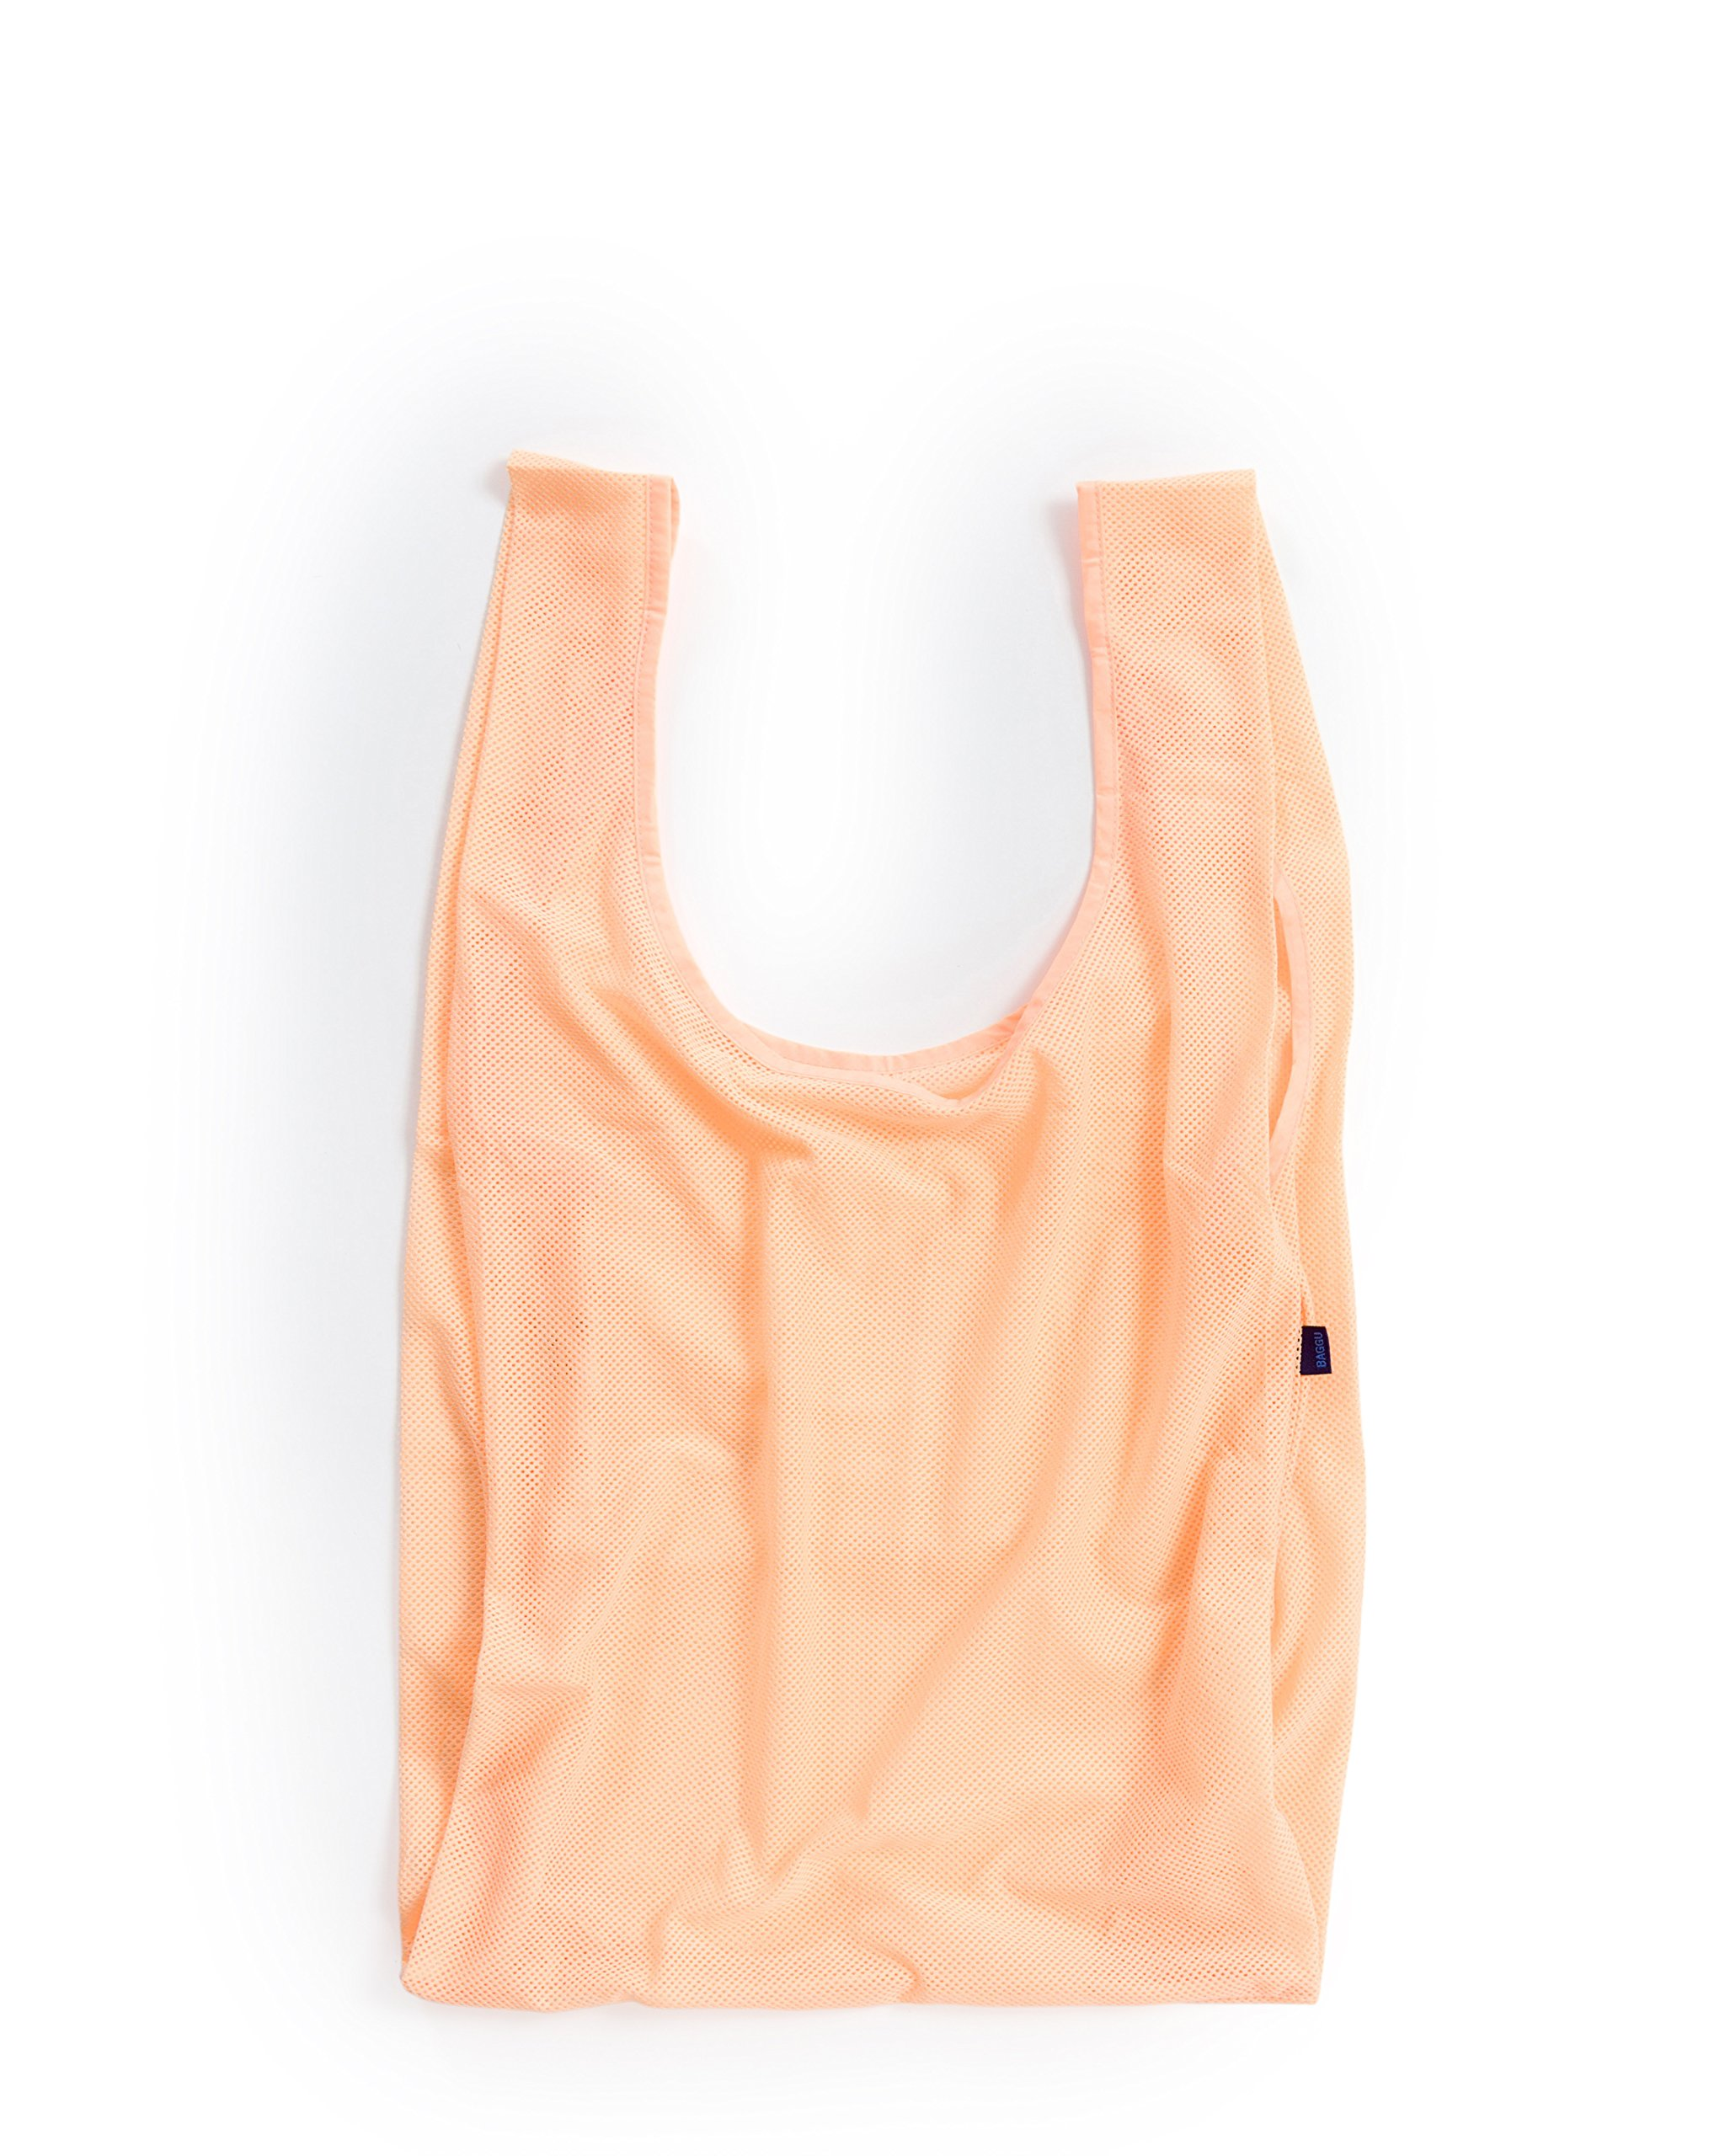 BAGGU Reusable Mesh Tote, Stylish and Eco-friendly Bag Ideal for the Gym or Beach, Electric Peach